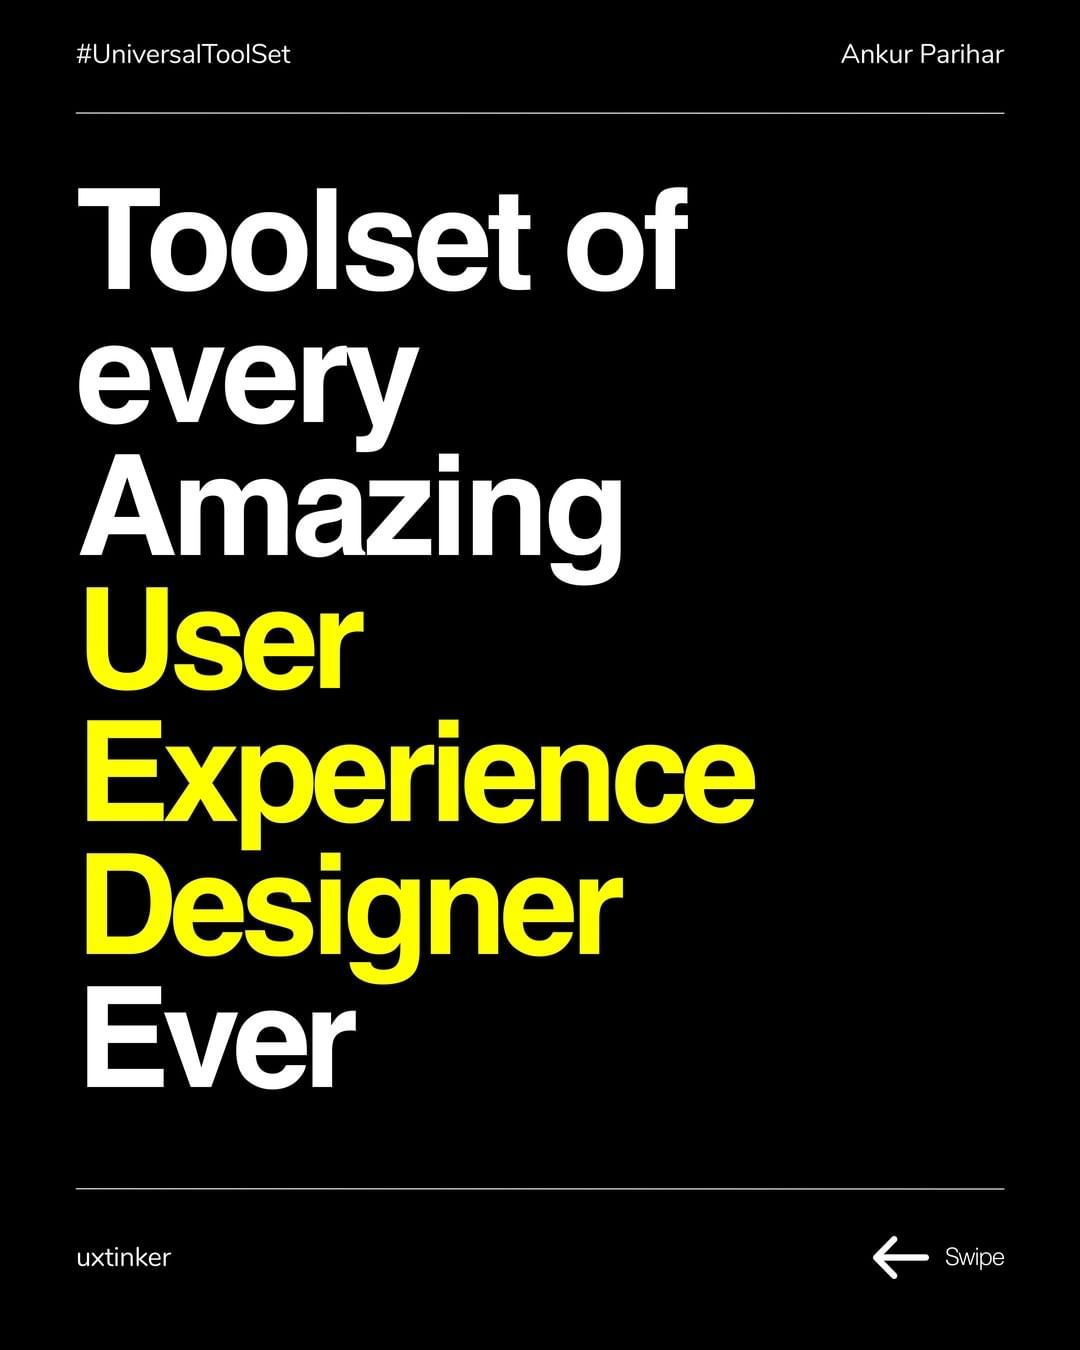 A universal toolset for User Experience Designers. We often are too much bogged down by not keeping... #userexperience